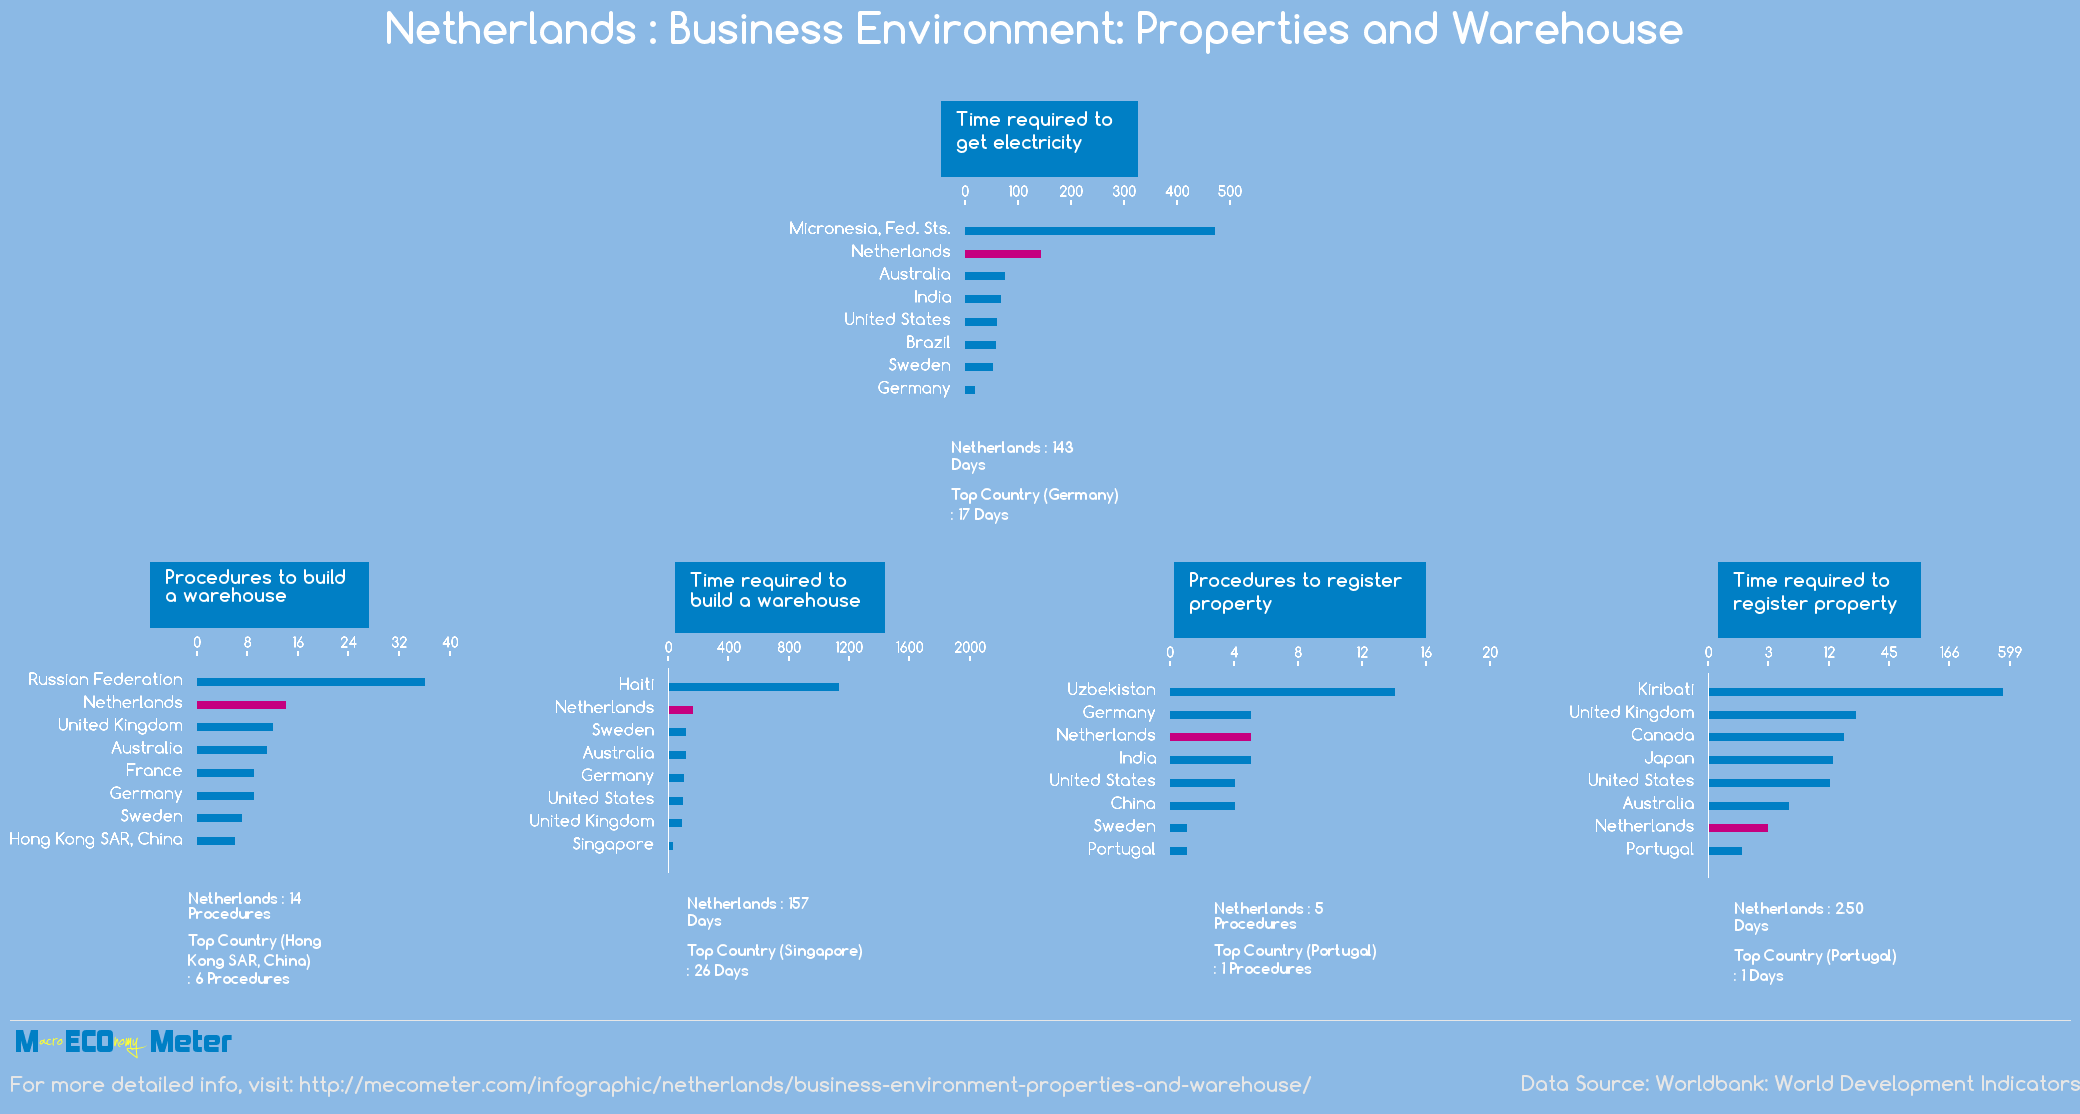 Netherlands : Business Environment: Properties and Warehouse